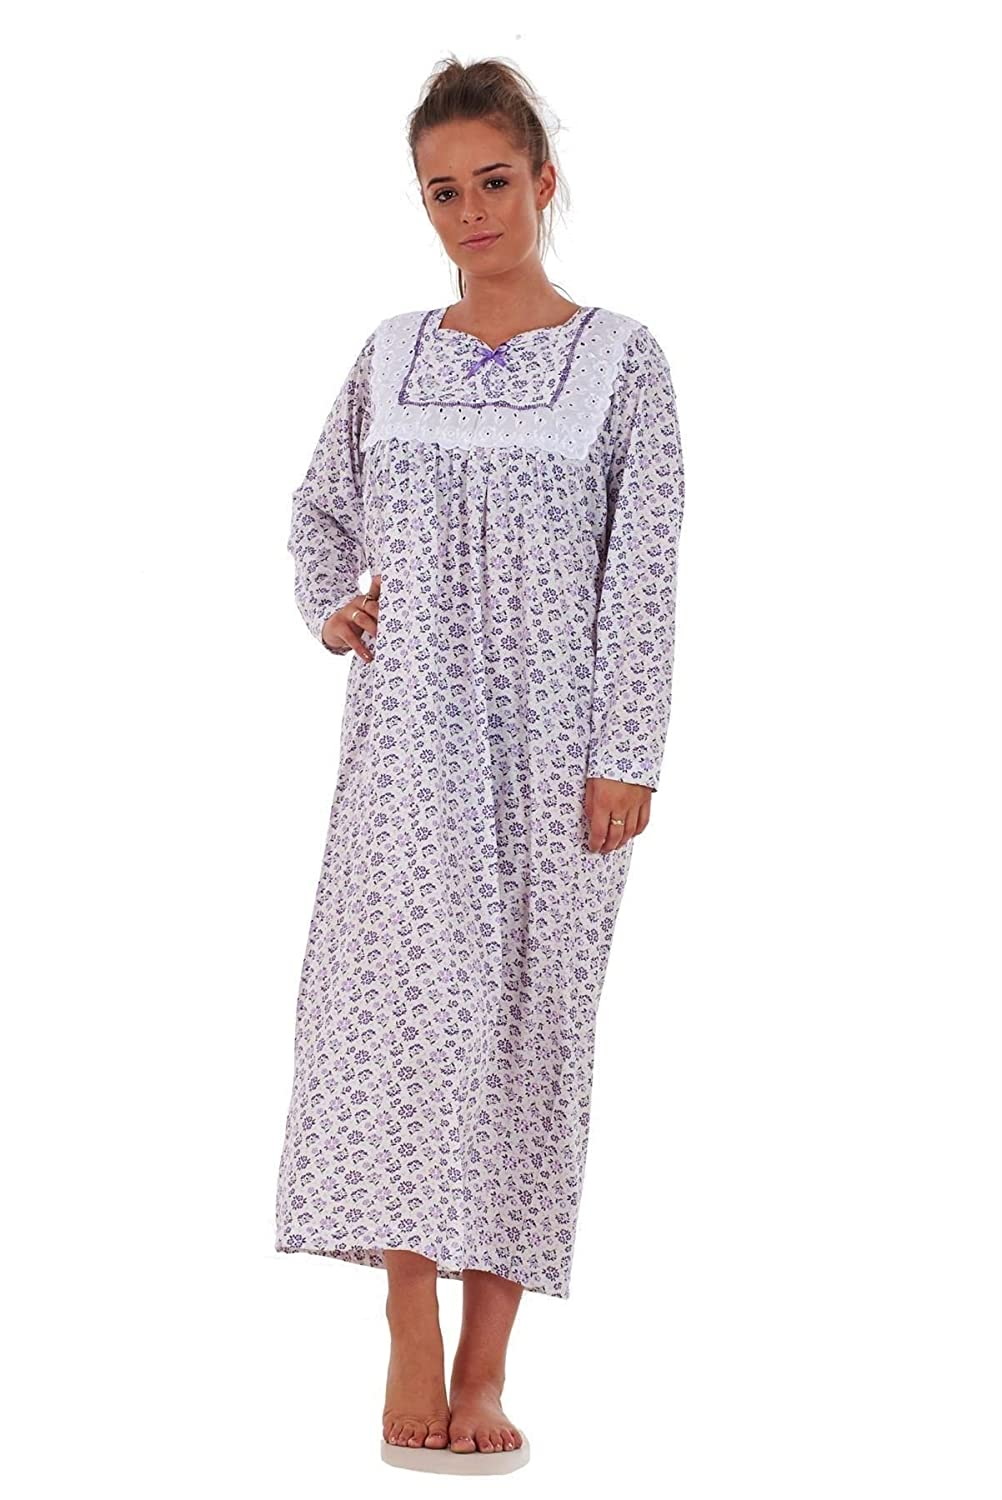 Bay eCom UK Women Nightwear Floral Print 100% Cotton Long Sleeve Long Nightdress M to XXXL Does not Apply